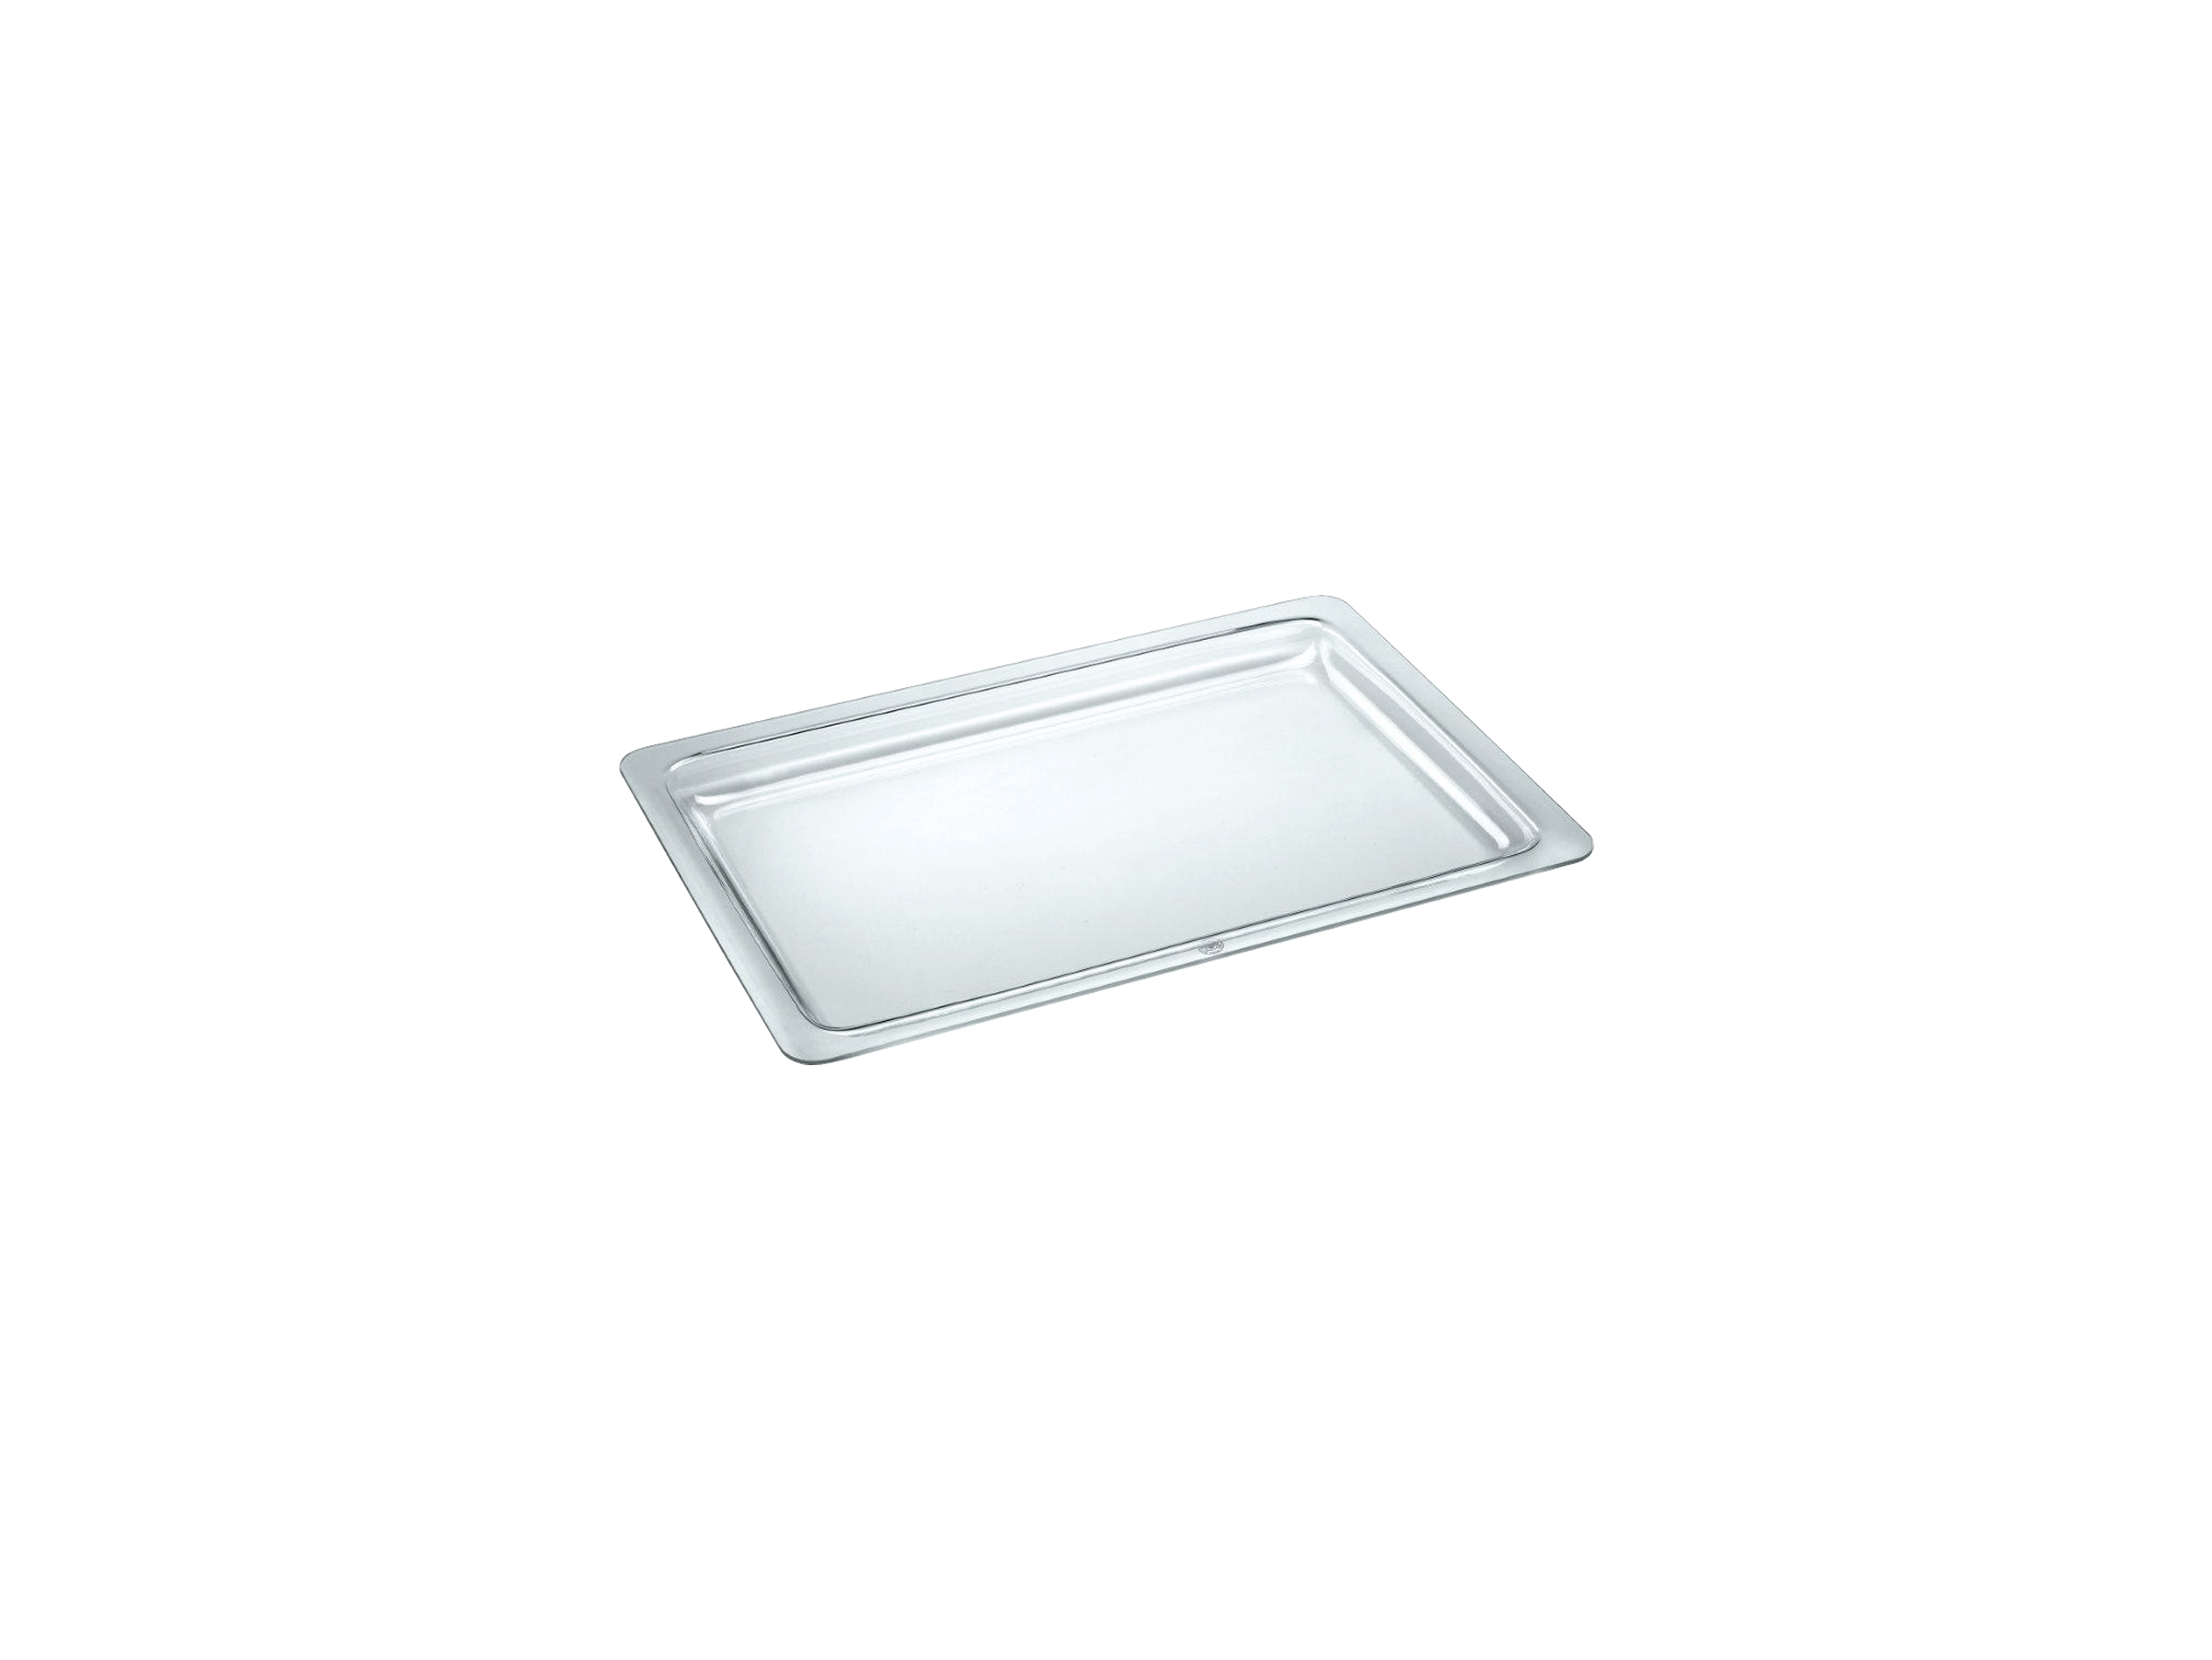 Glass Tray | Bertazzoni - White